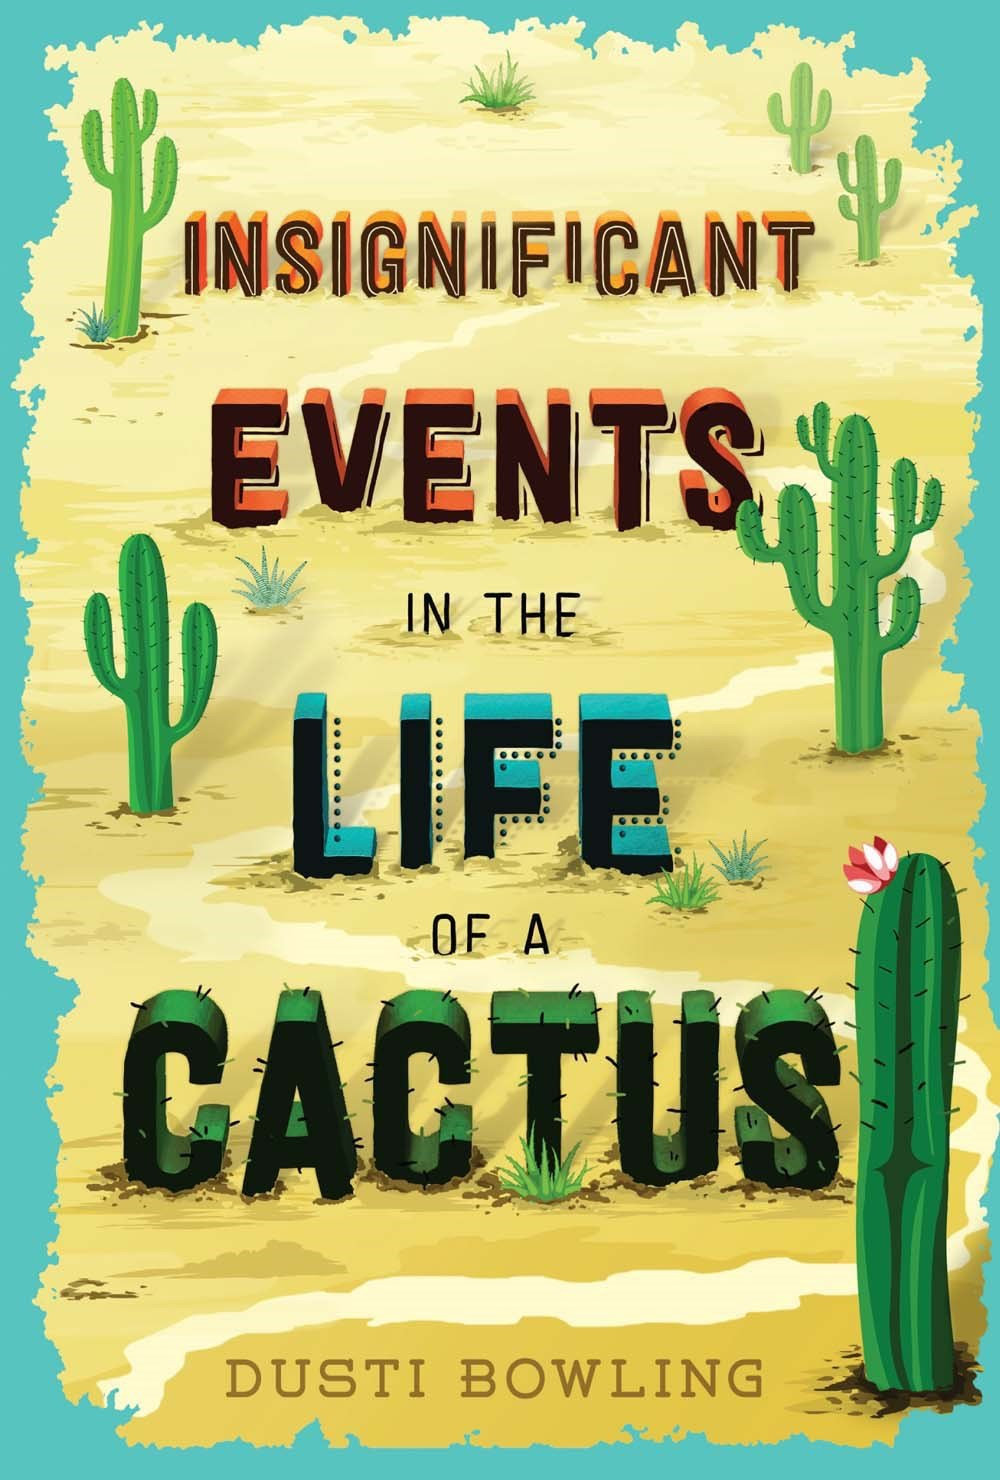 Image result for insignificant events in the life of a cactus